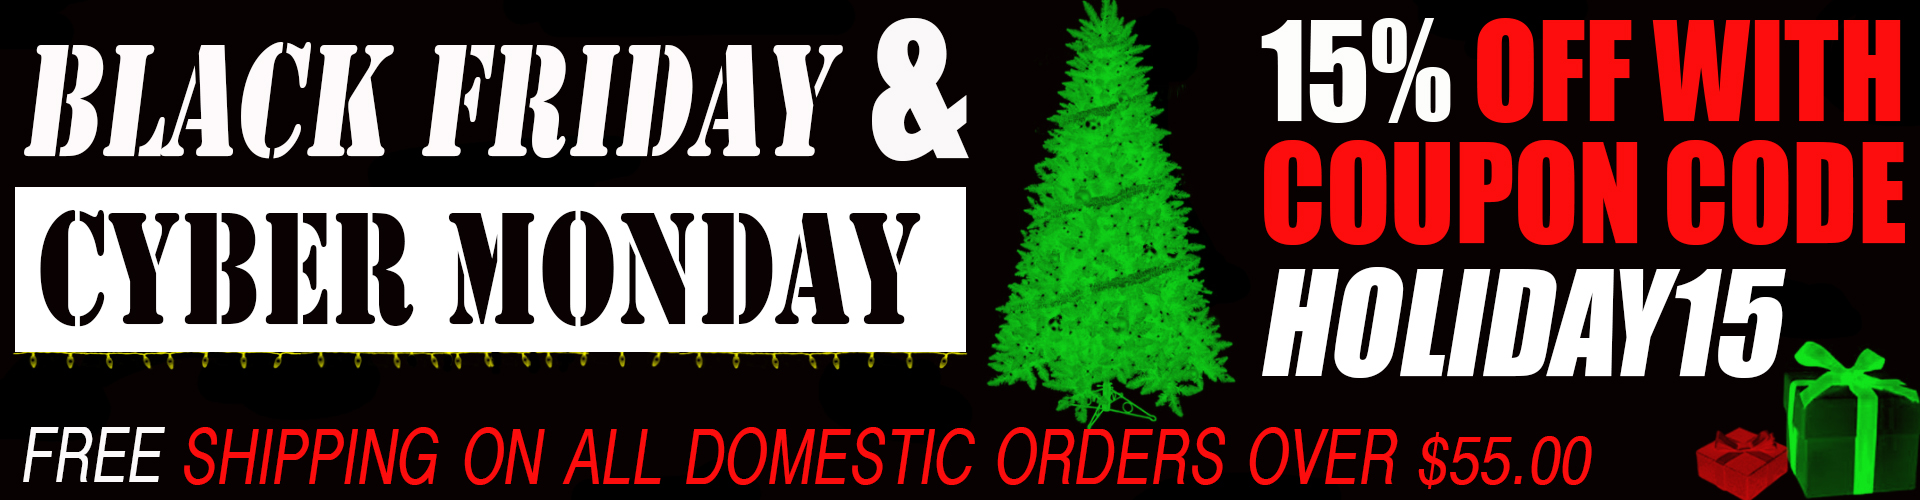 Black Friday and Cyber Monday Savings. Get 15 percent off all items in your order with coupon code: HOLIDAY15. Free shipping on all orders over $55.00 shipped to a United States address.